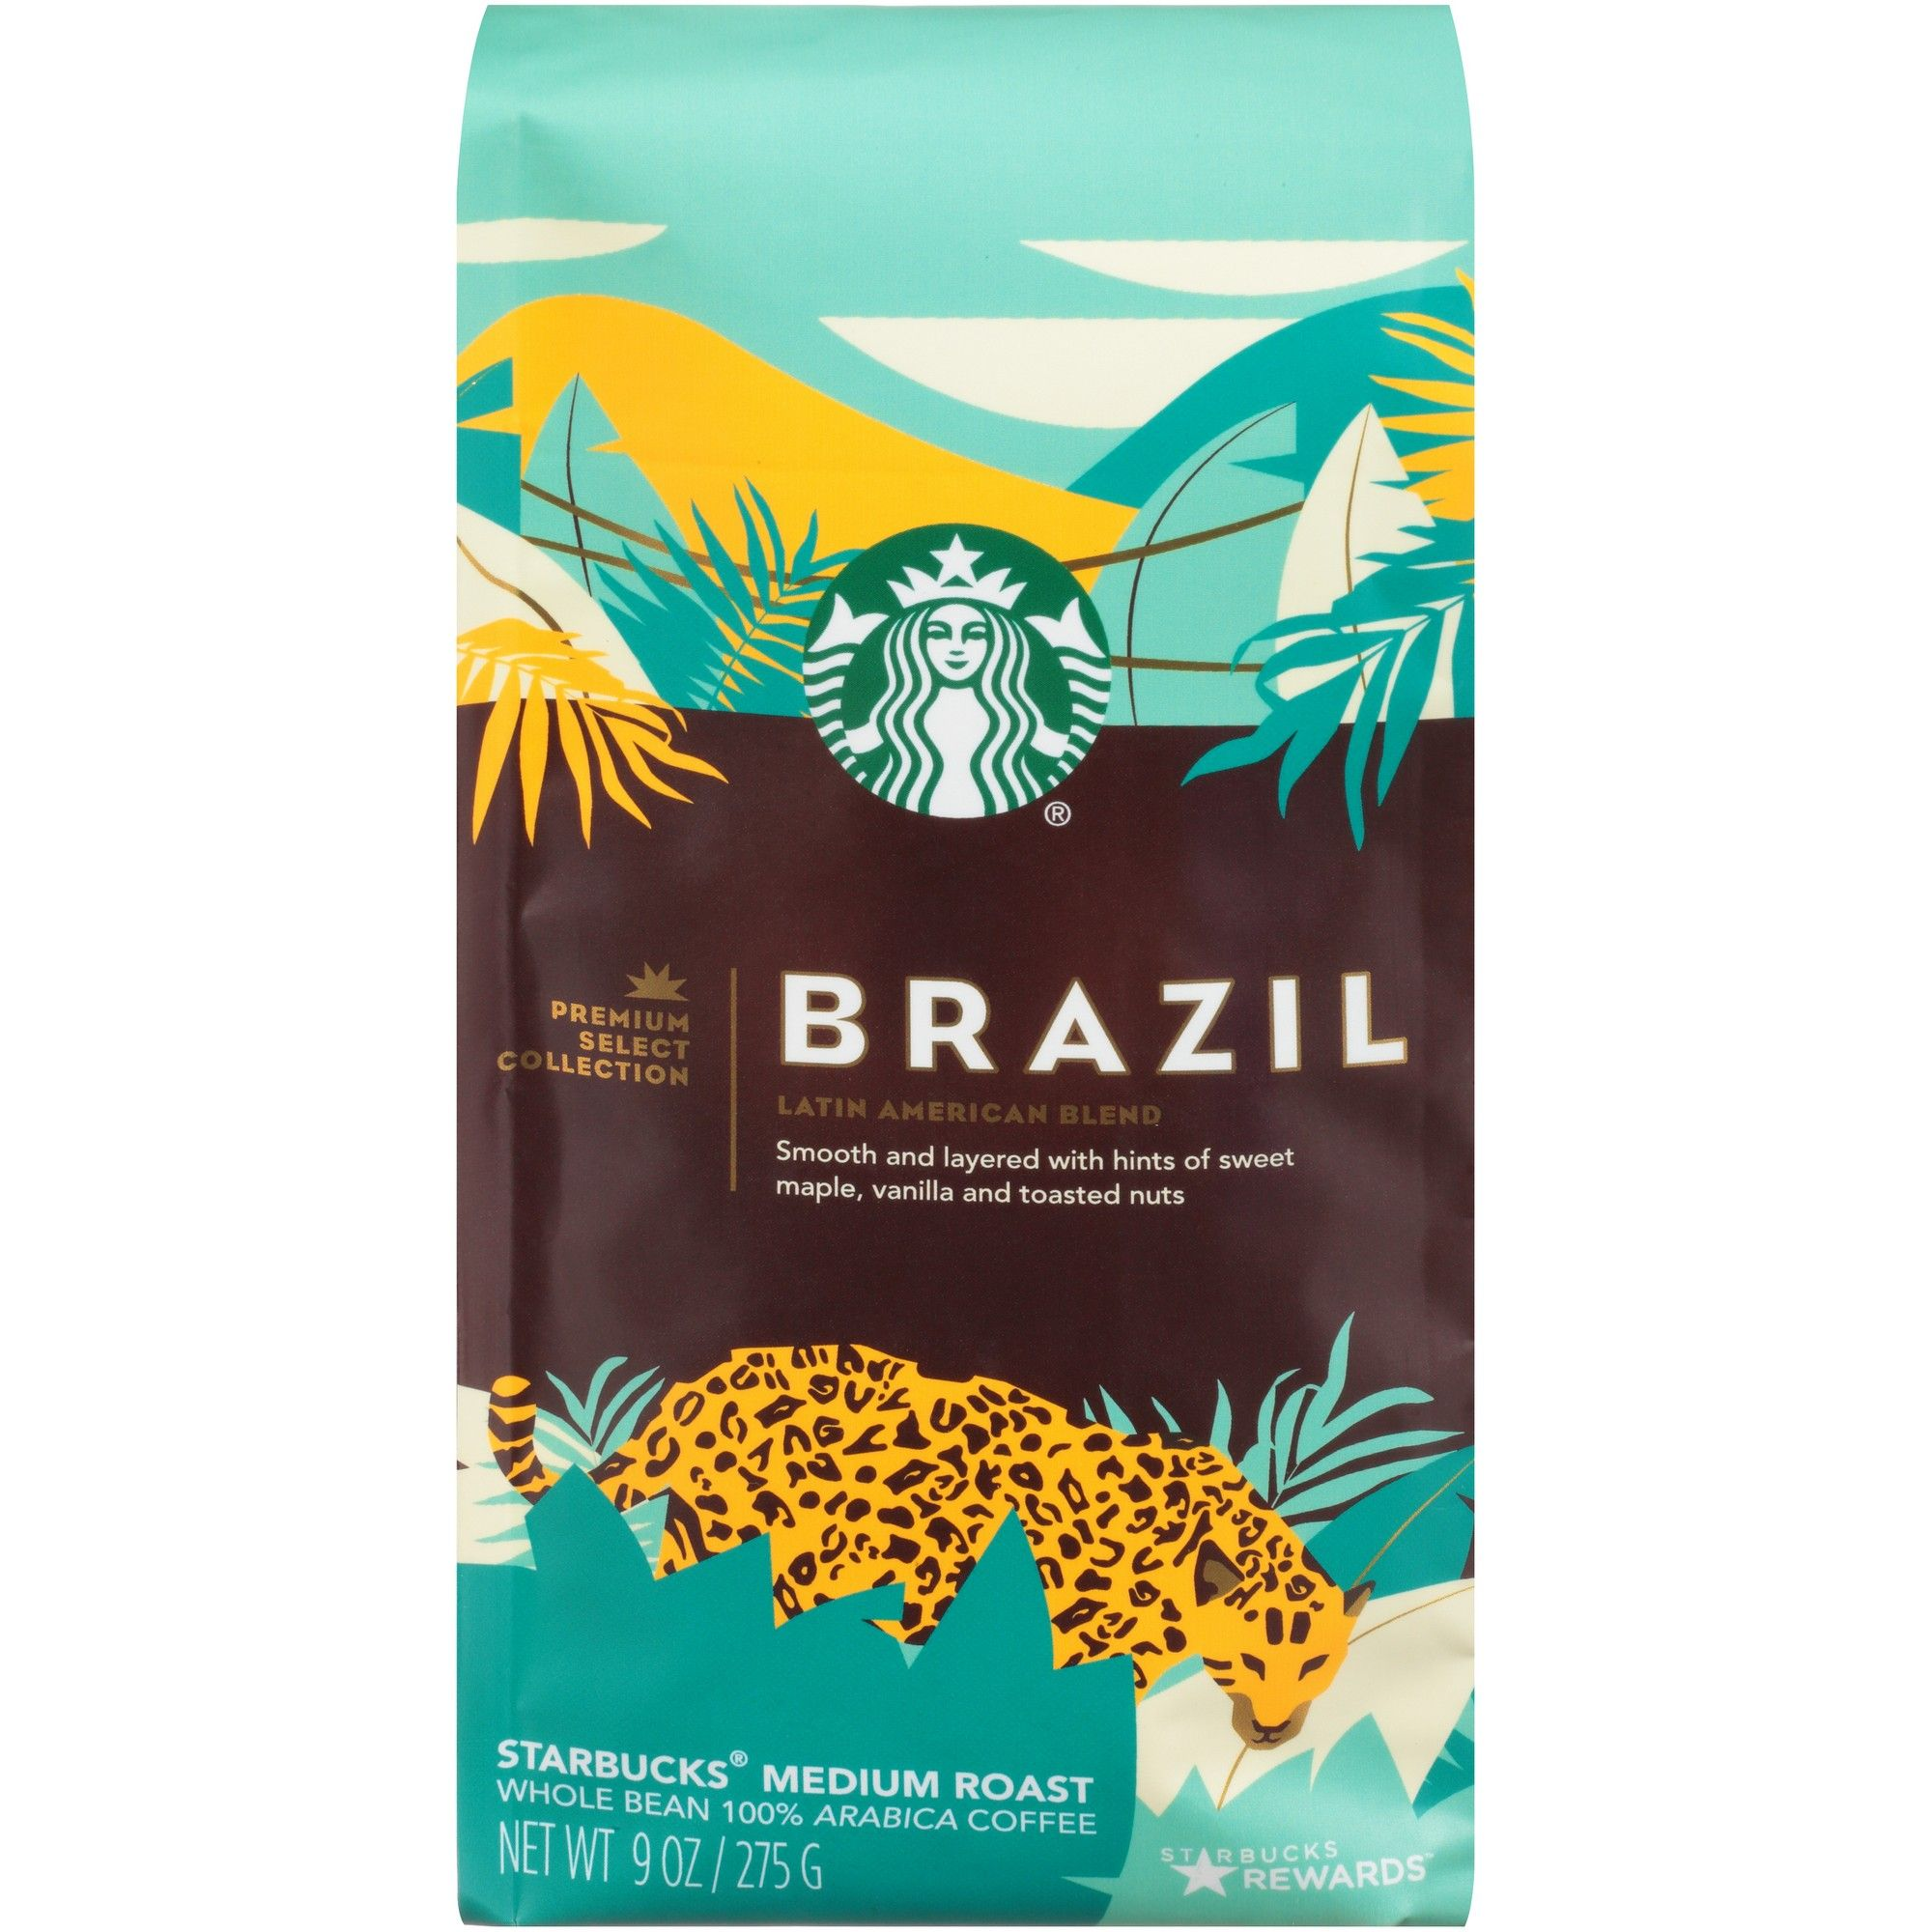 Starbucks Brazil Single Origin Medium Roast Whole Bean